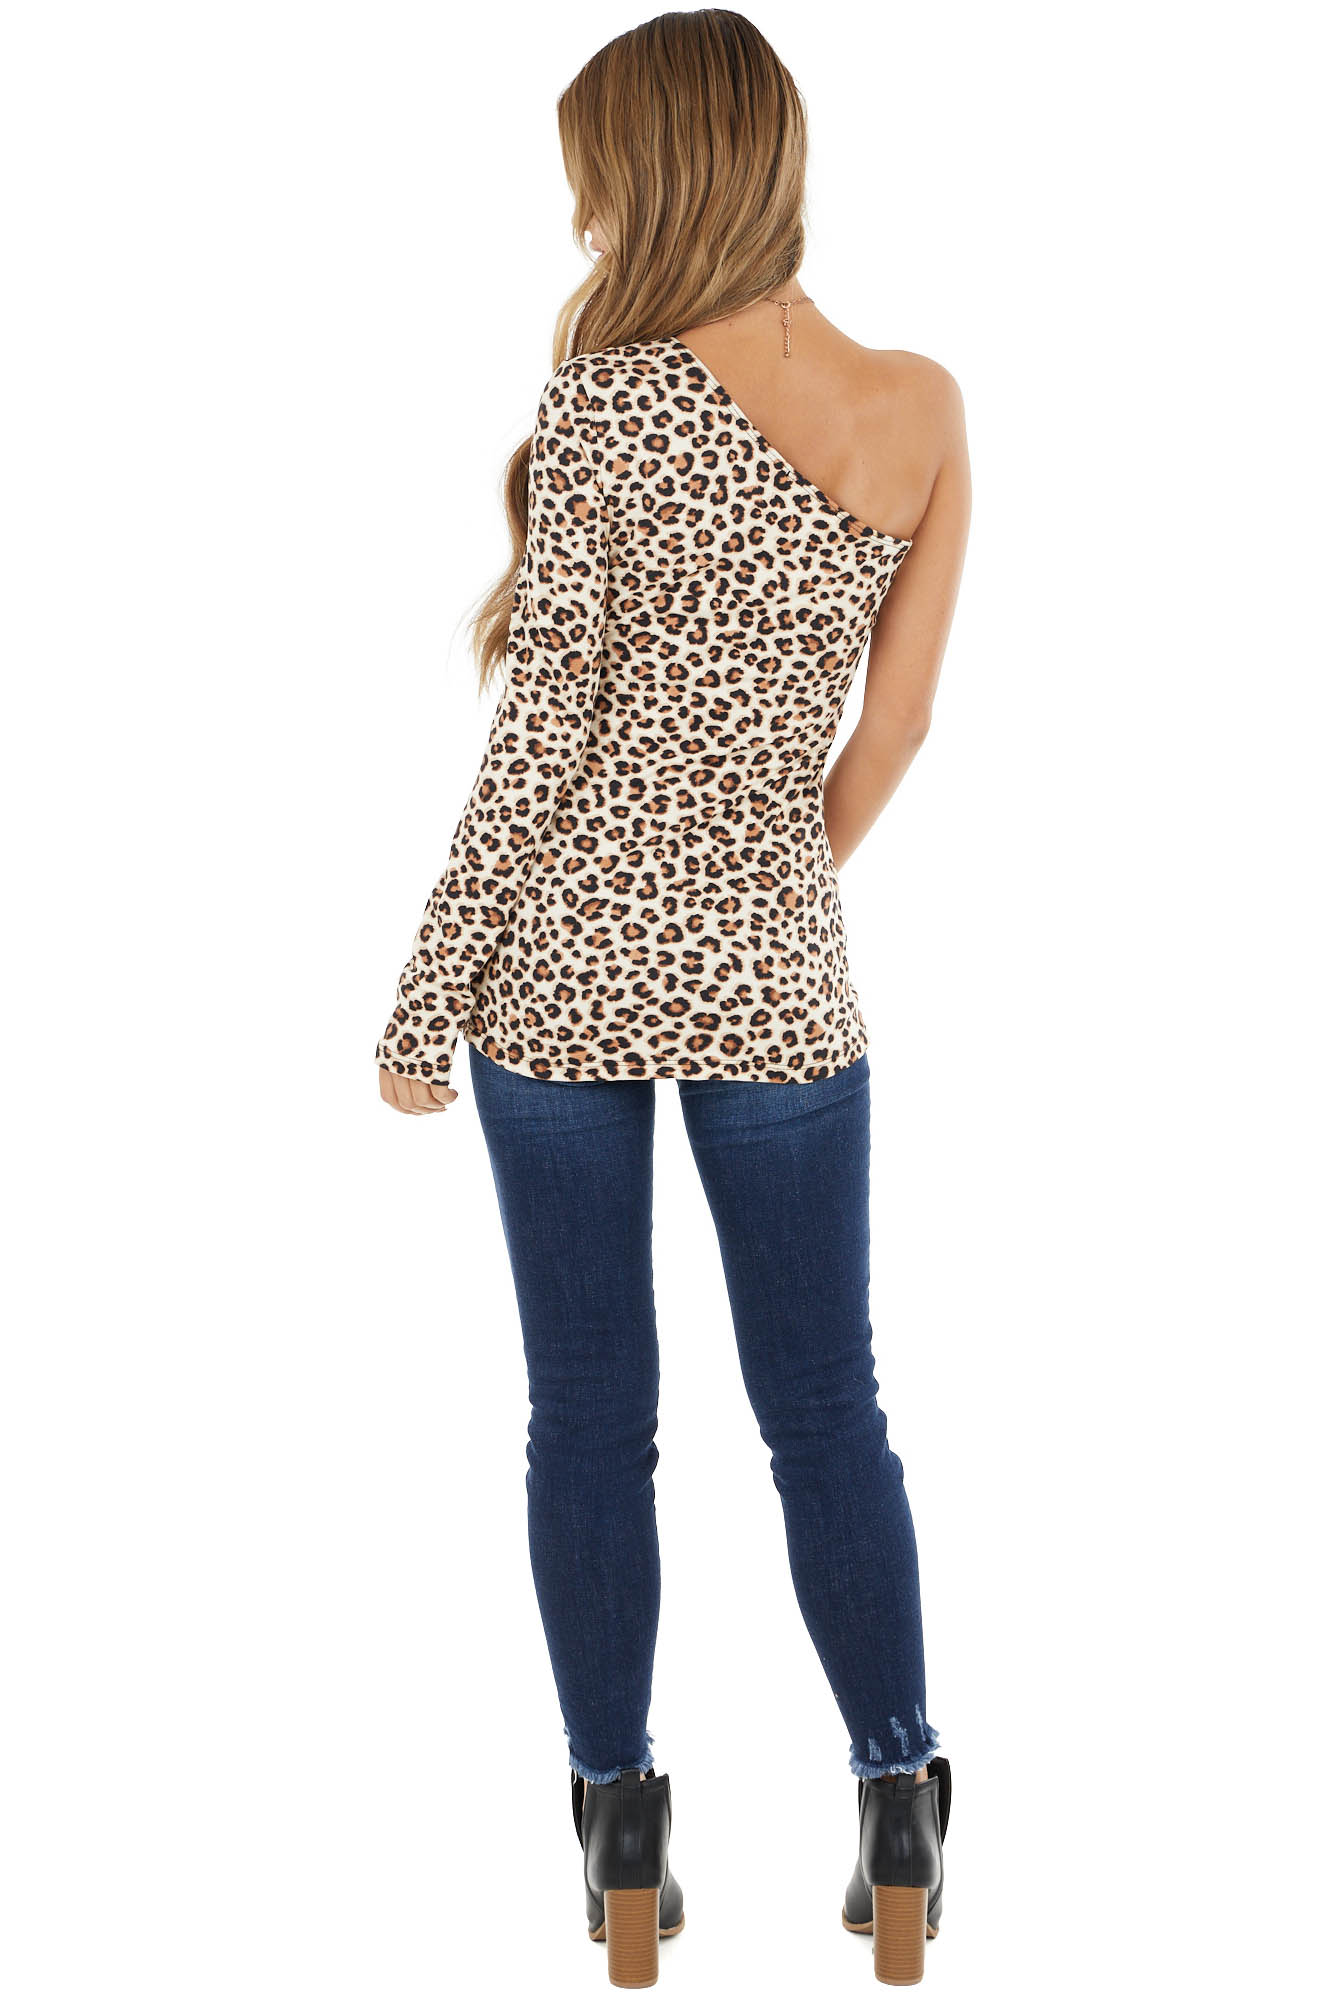 Cream Leopard Print One Shoulder Soft Knit Long Sleeve Top